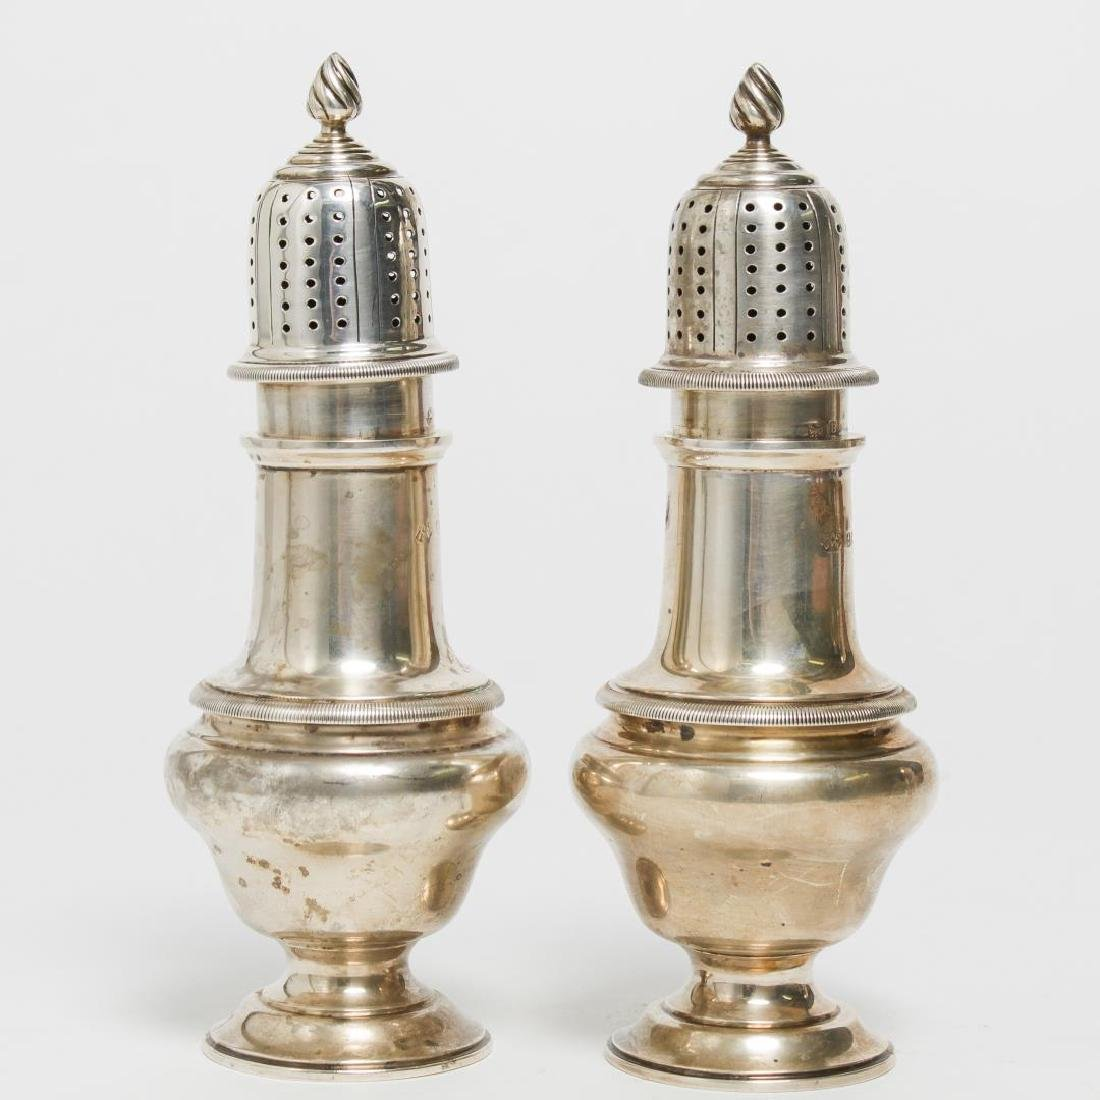 Silver Sugar Casters or Shakers, Vintage 1920s